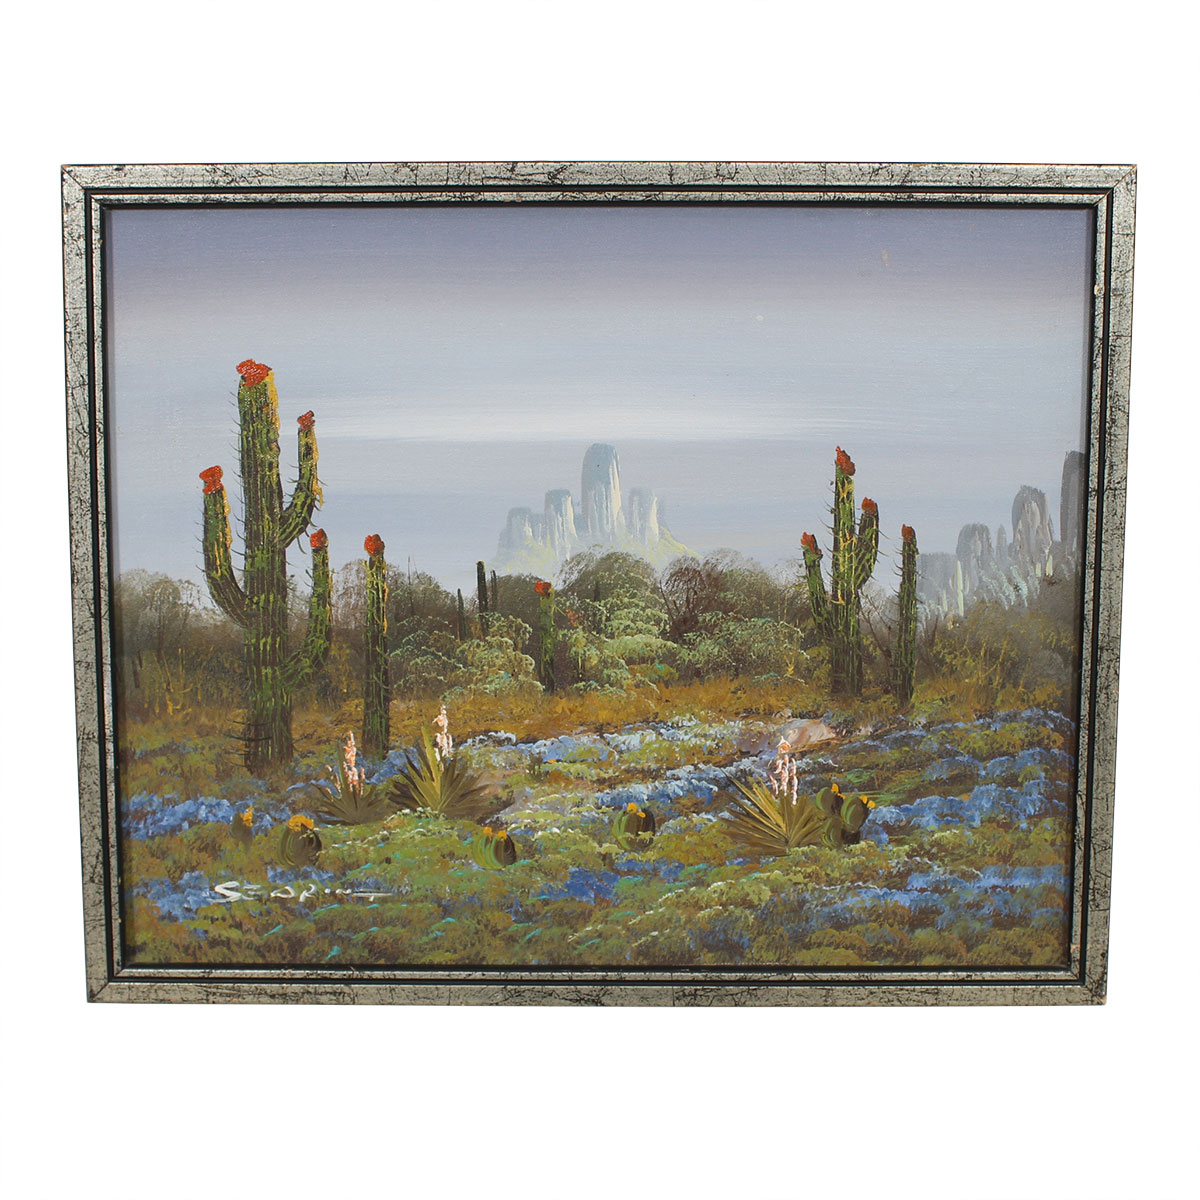 Original Painting of the Desert with Cacti